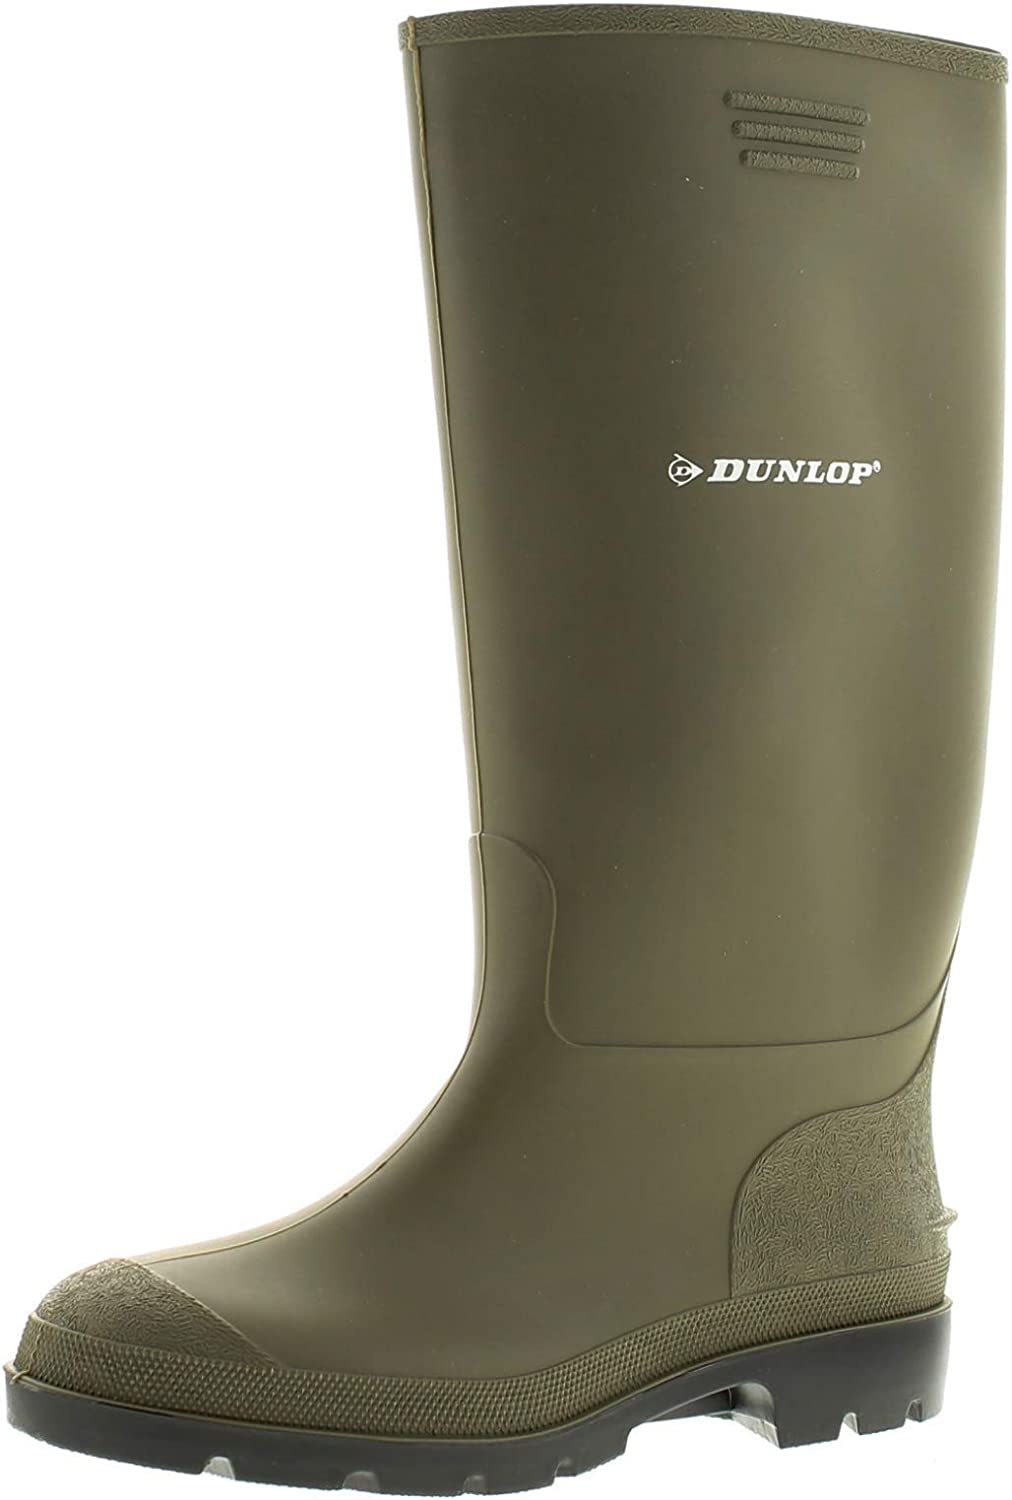 Military Issue Safety Wellington Gummi Boots Wellies Steel Toe Cap Size 11 NEW